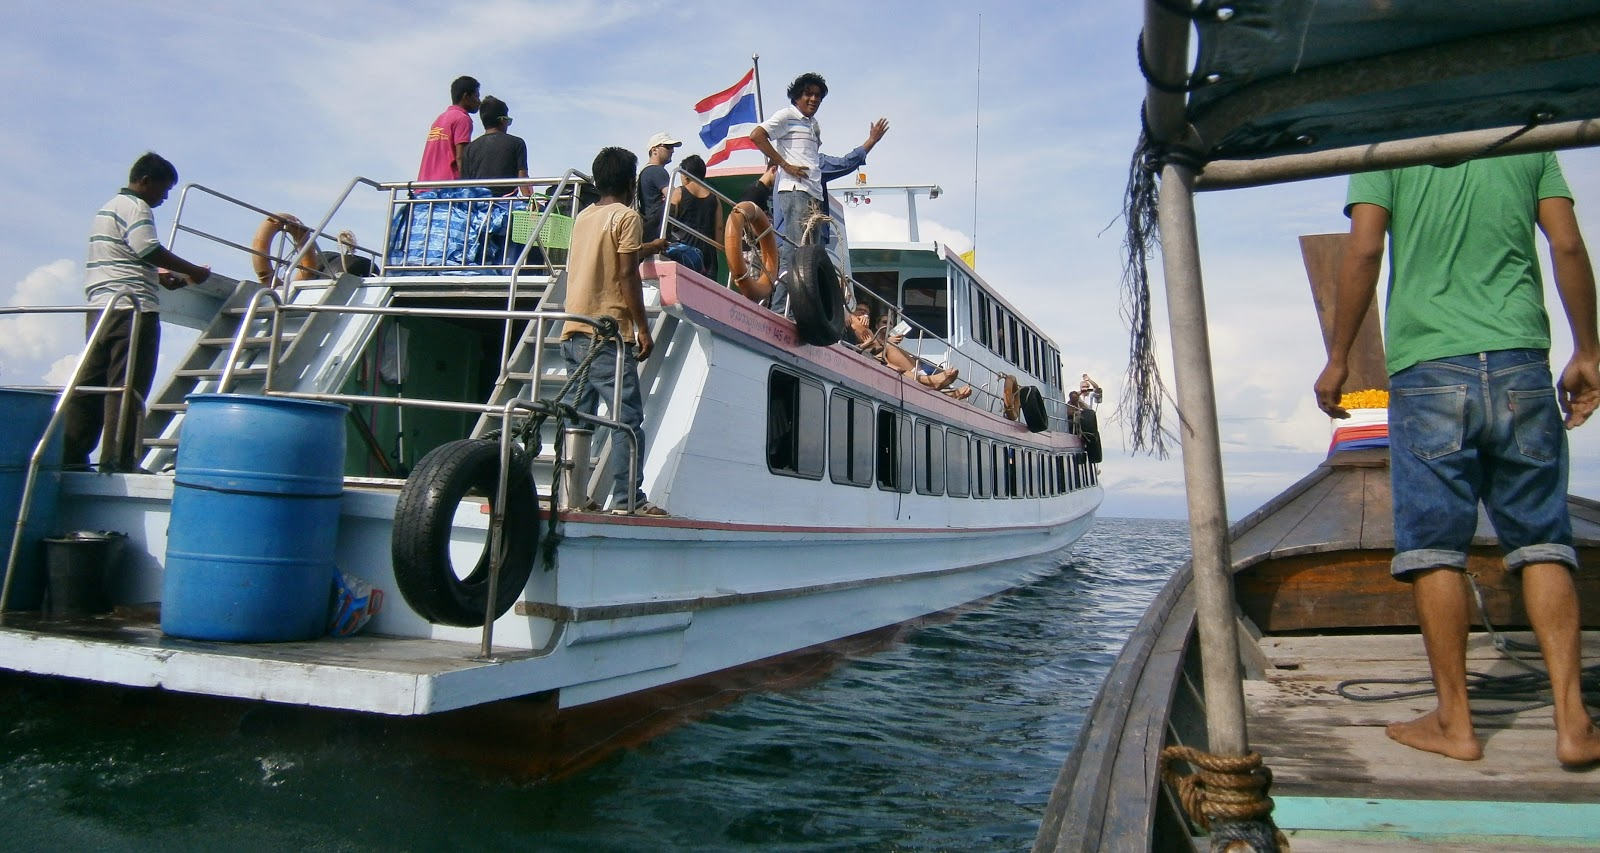 Travel from Krabi directly to Koh Jum by ferry